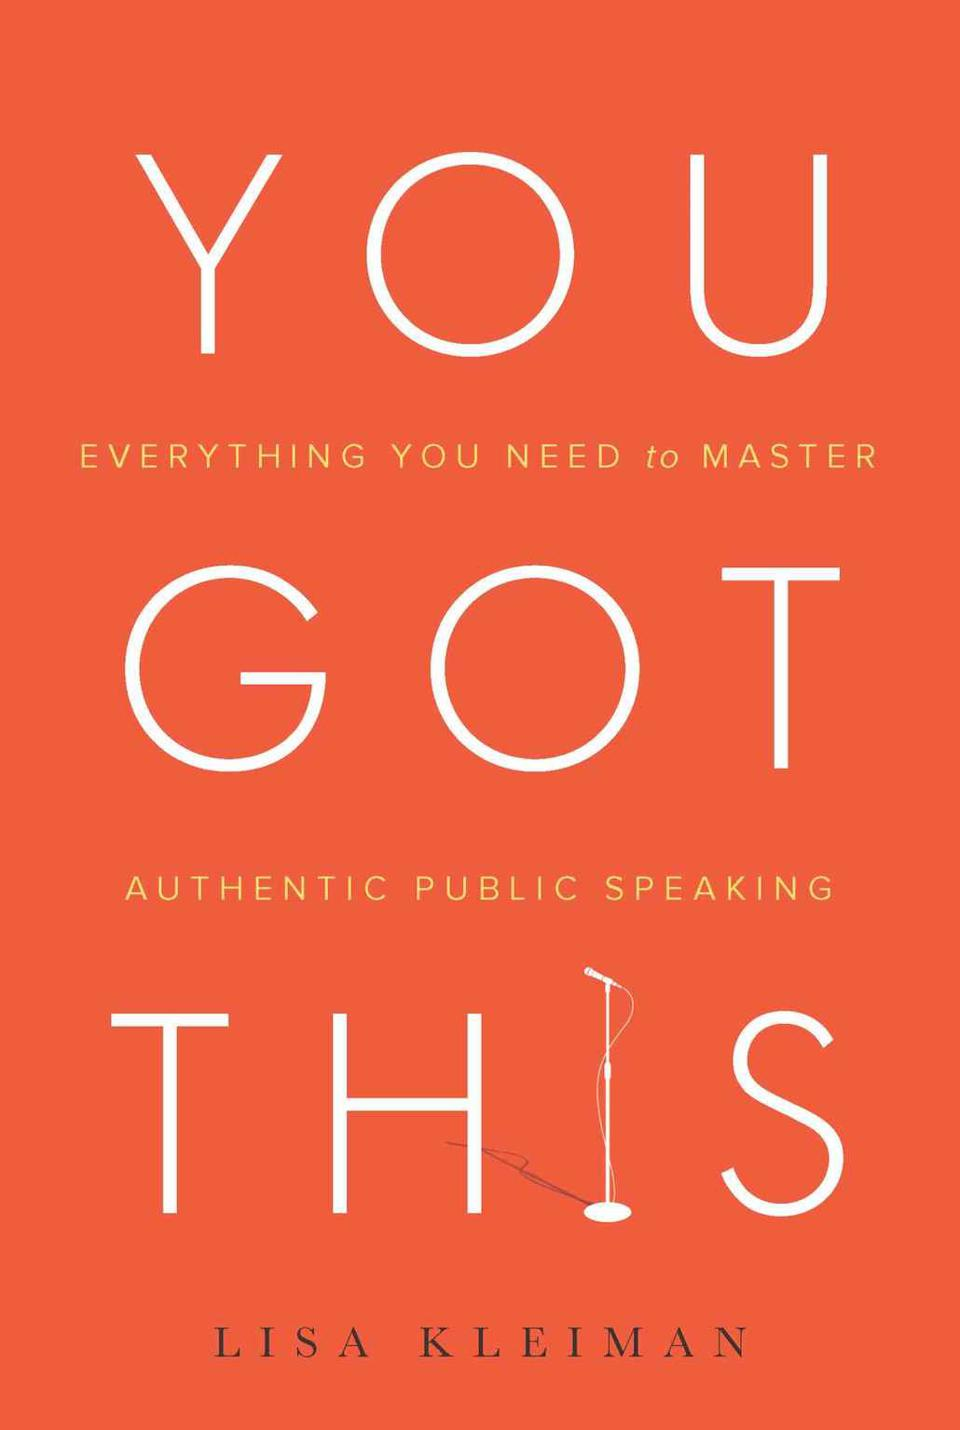 You Got This: Everything You Need to Master Authentic Public Speaking by Lisa Kleiman